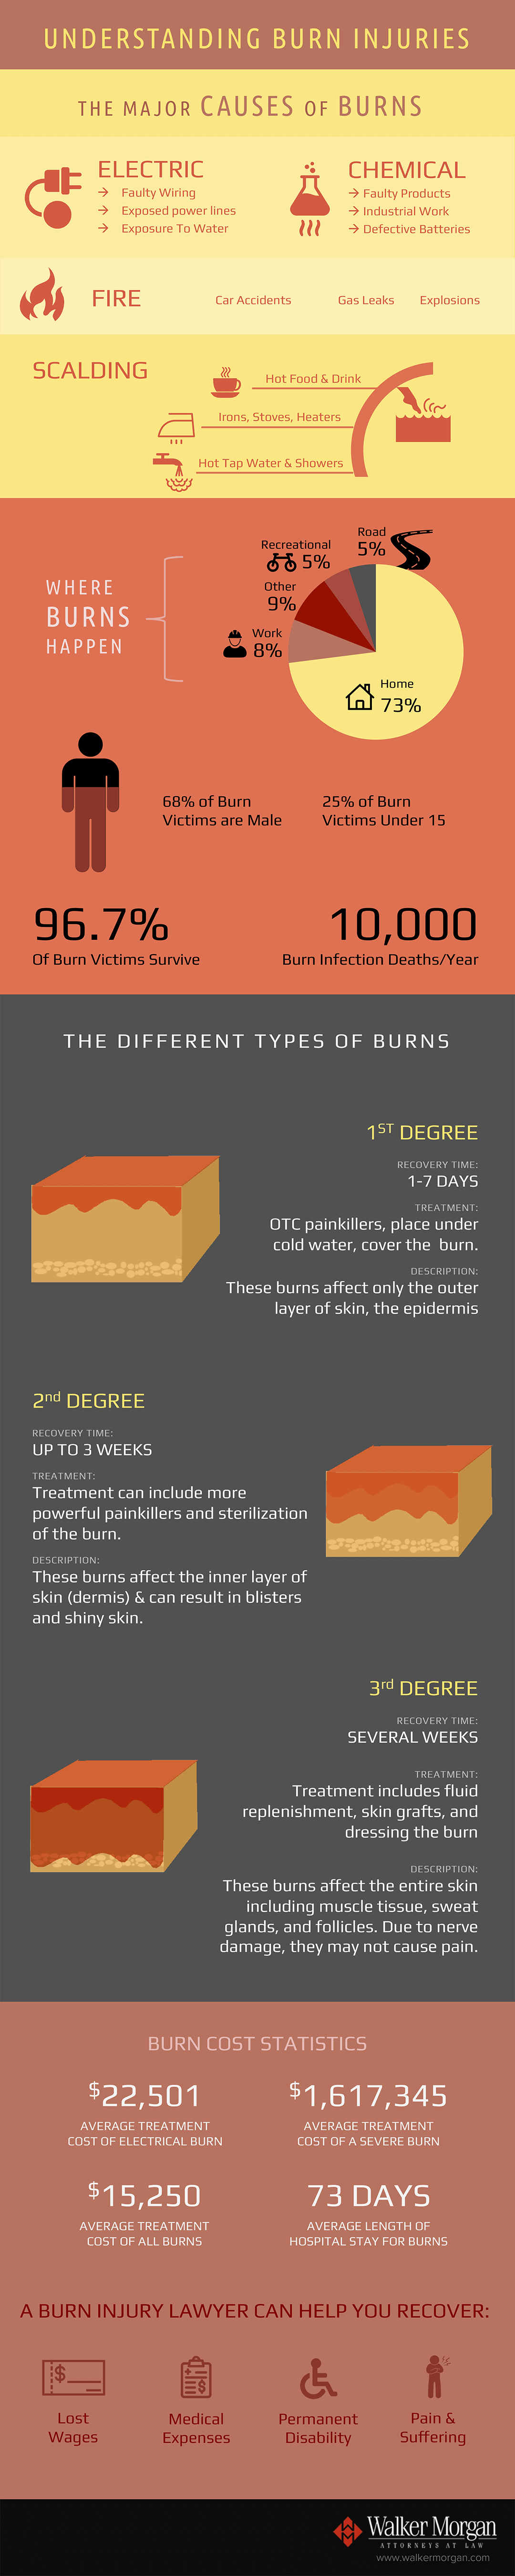 Burn-injuries-Infographic-plaza